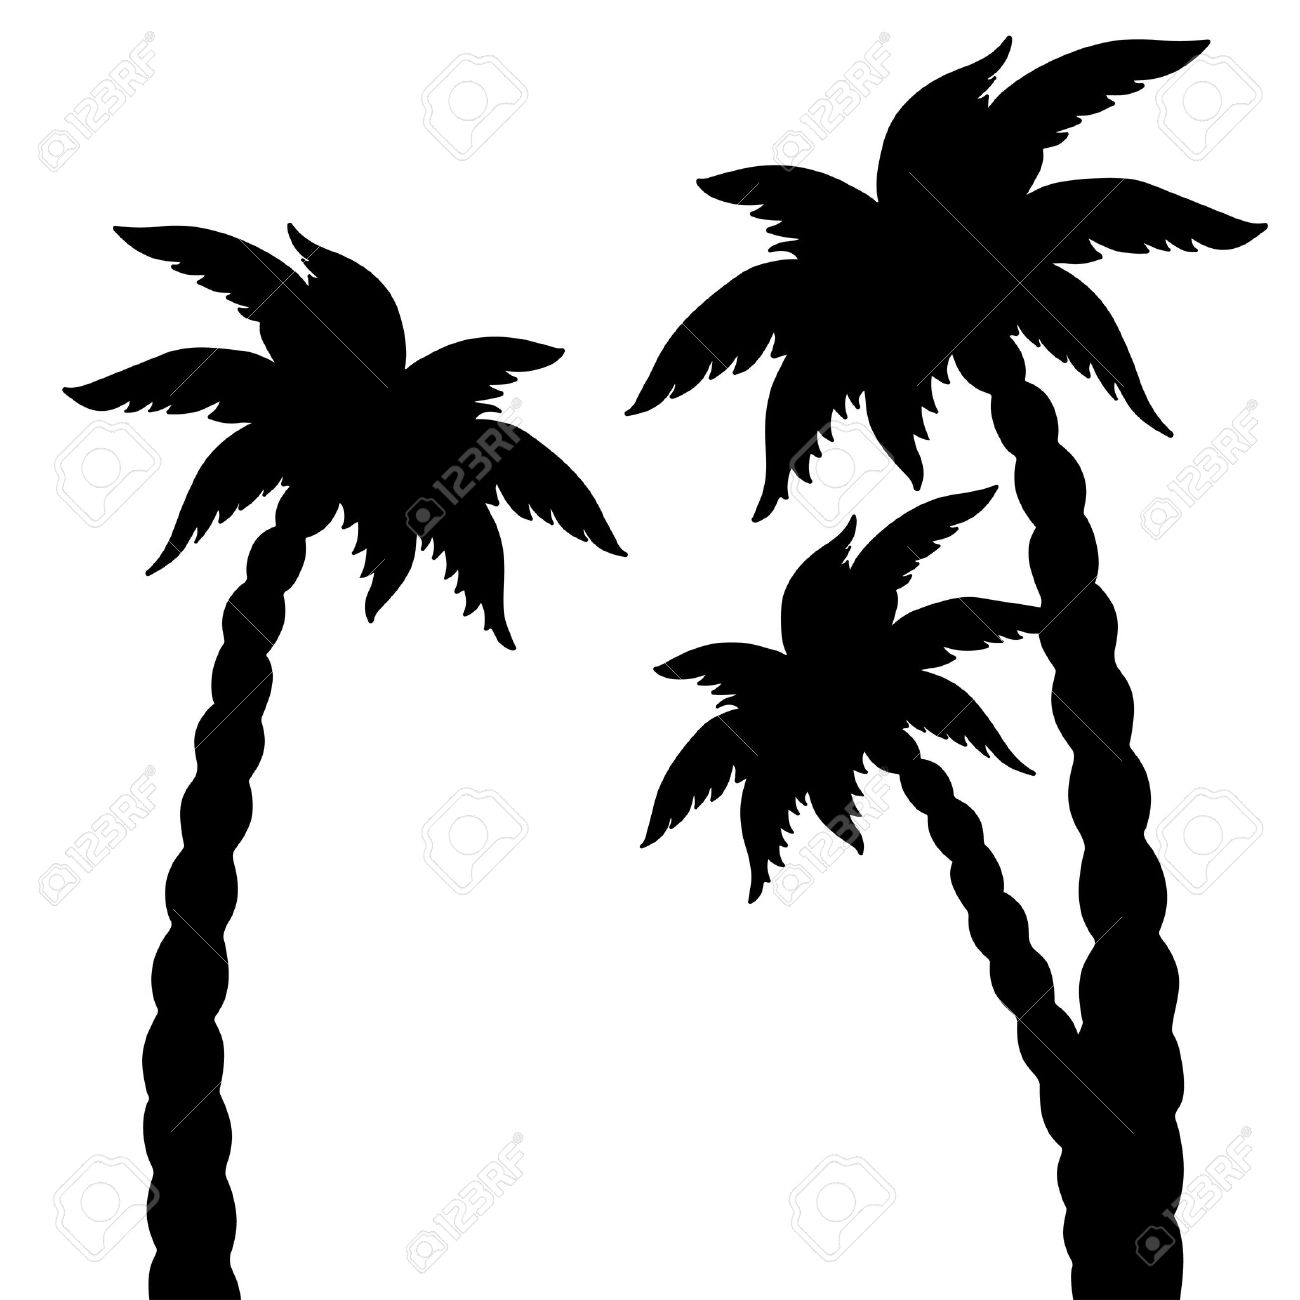 set coconut palms trees silhouettes isolated on white background rh 123rf com palm trees vector art free palm trees vector silhouette